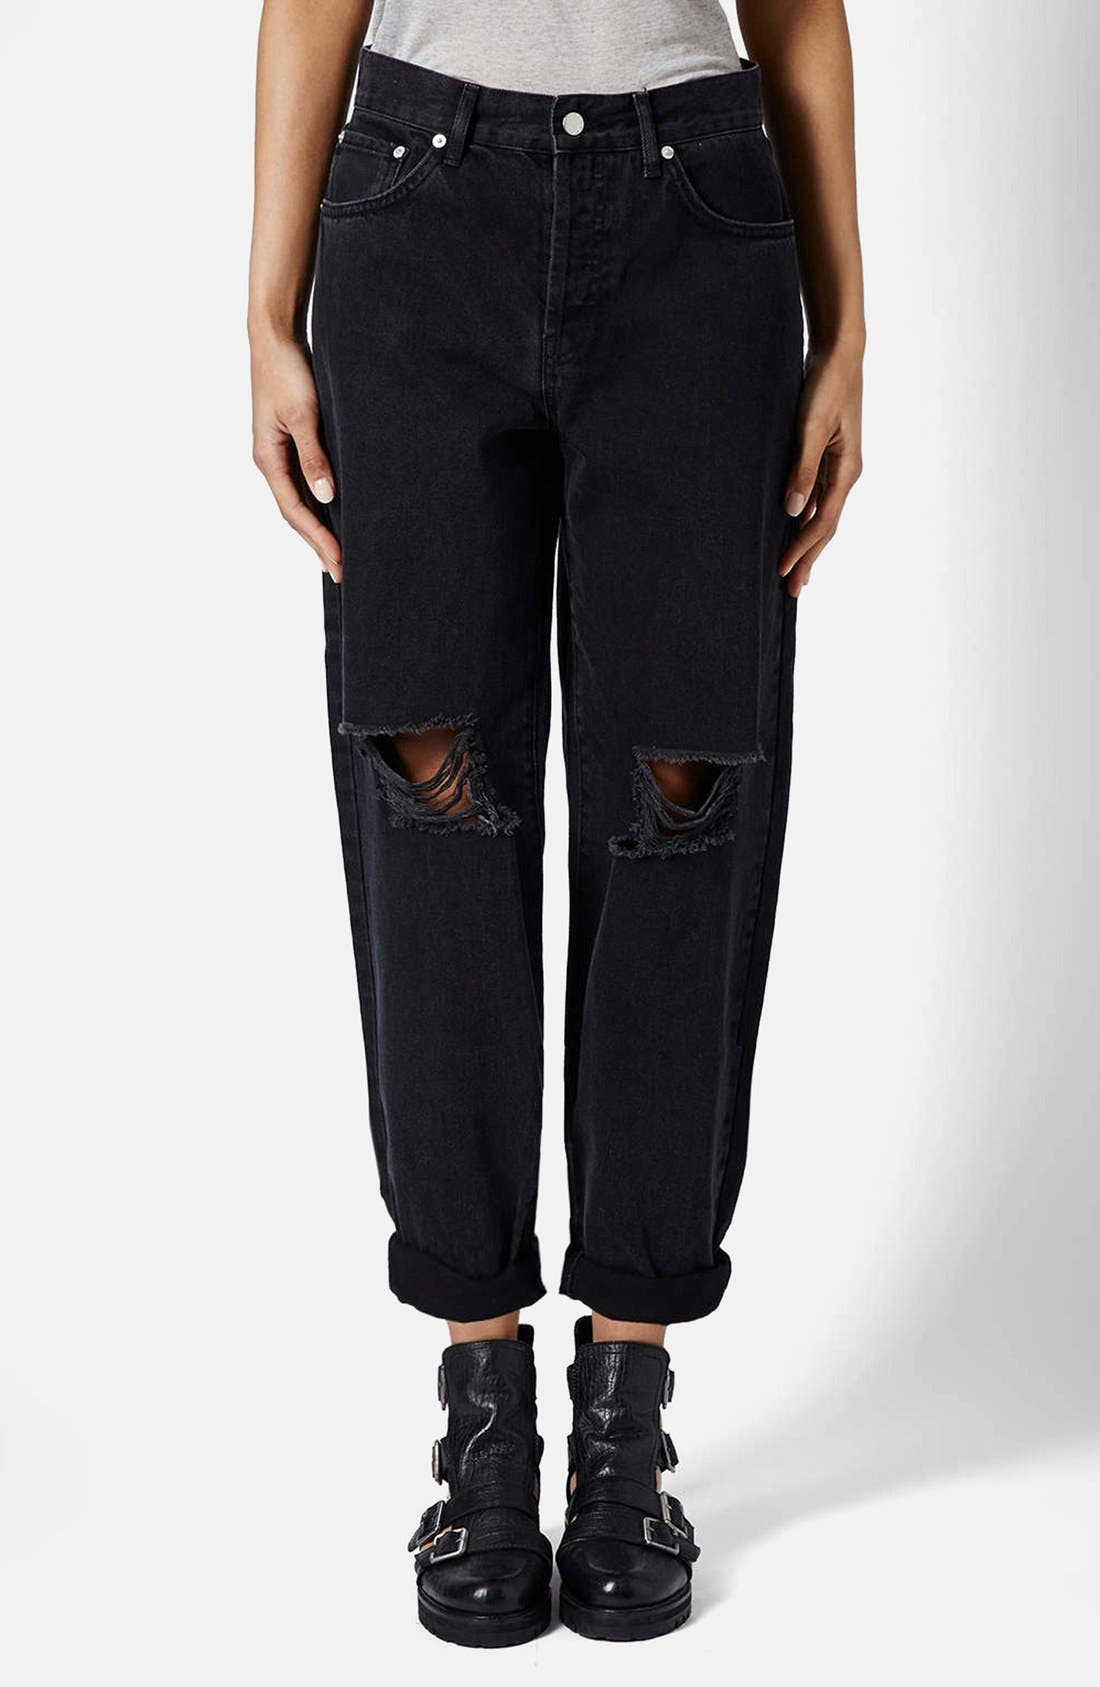 Alternate Image 1 Selected - Topshop Boutique Ripped Baggy Jeans (Black)